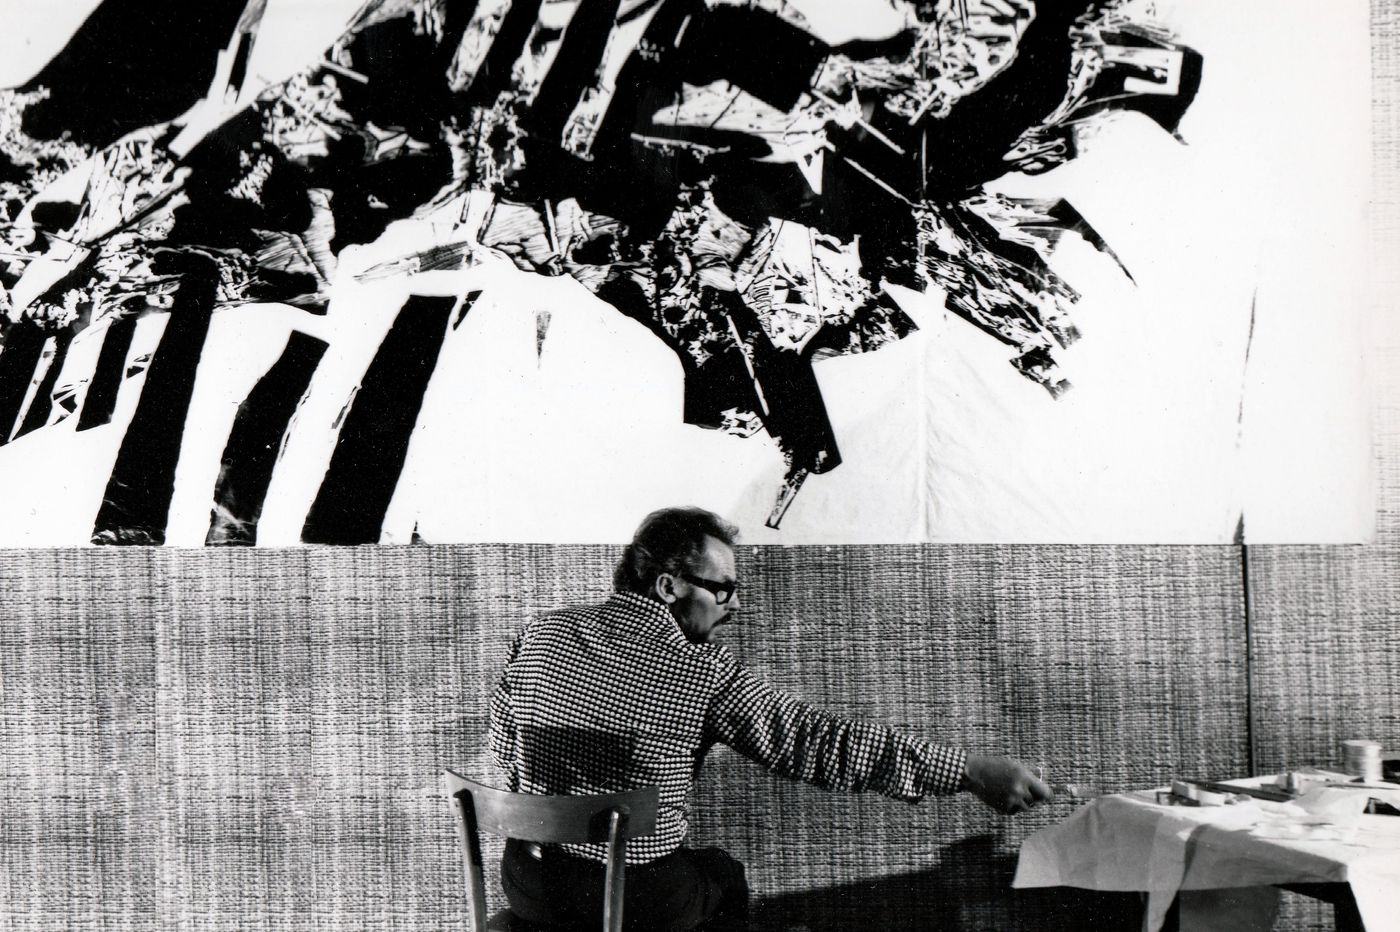 Honoring a printmaker who fled Lithuania and had a profound influence on black artists in Philly